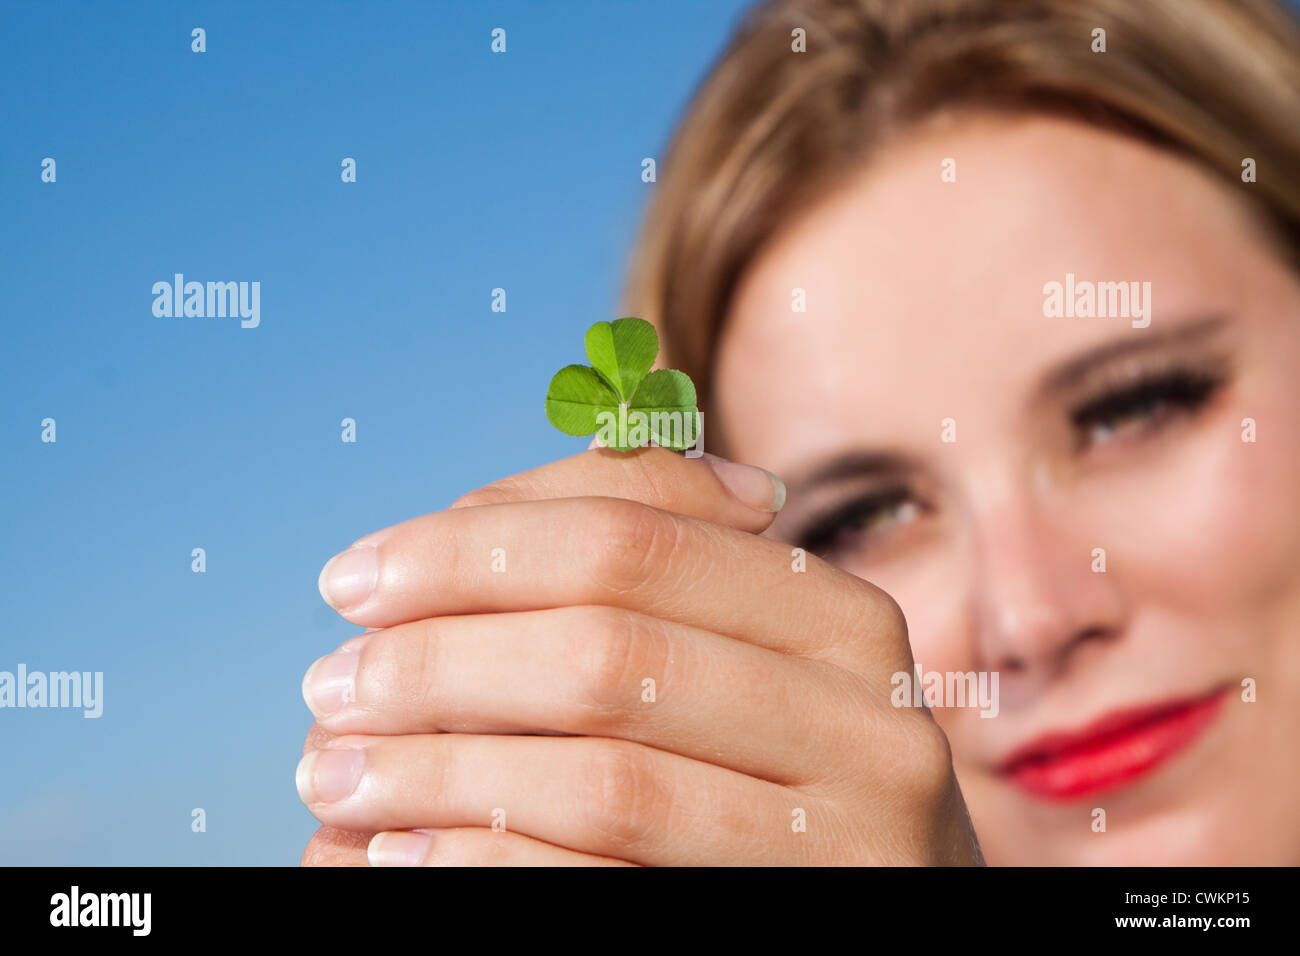 woman with four leafed clover - Stock Image